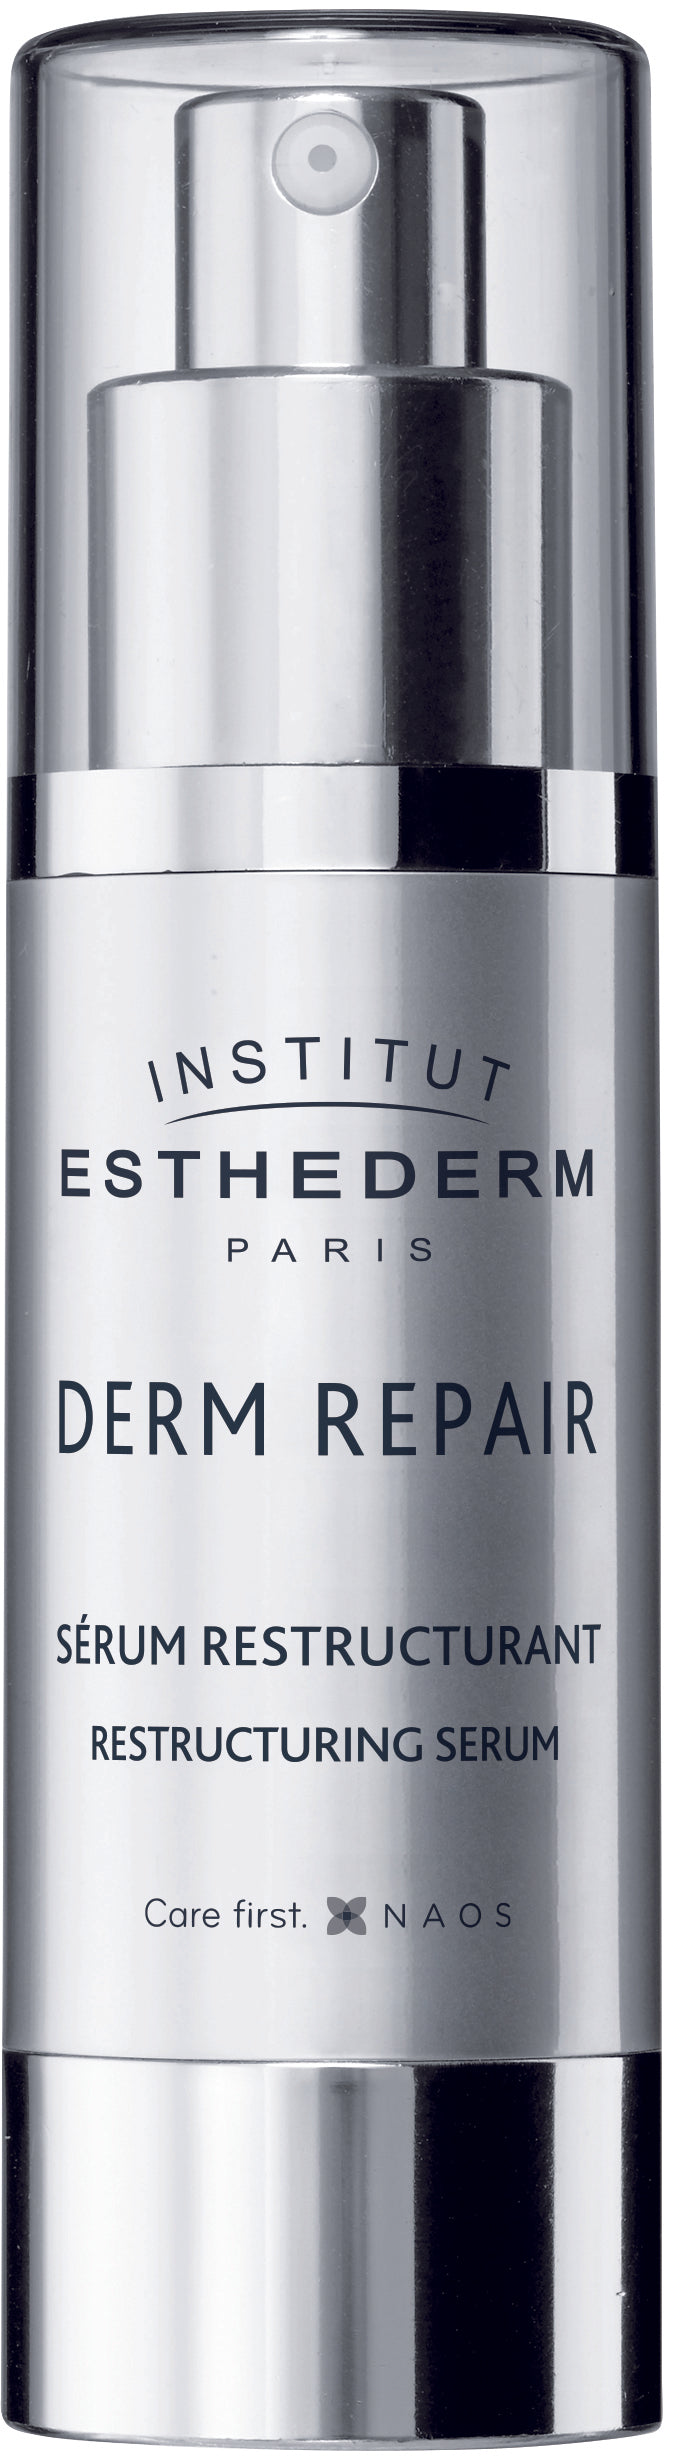 EST024- DERM REPAIR RESTRUCTURING SERUM 30ML